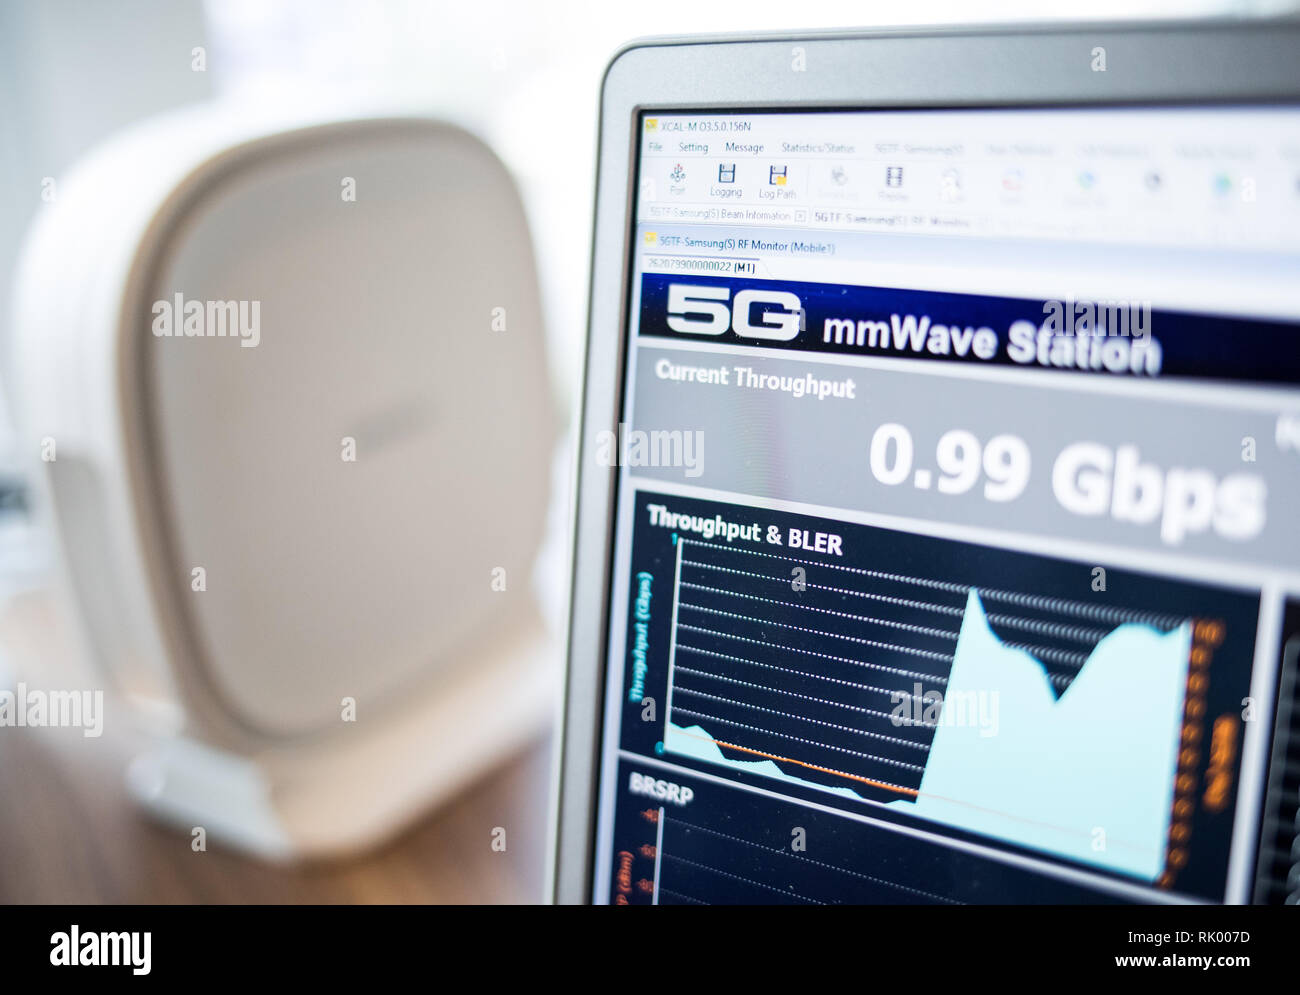 Gbps Stock Photos & Gbps Stock Images - Alamy